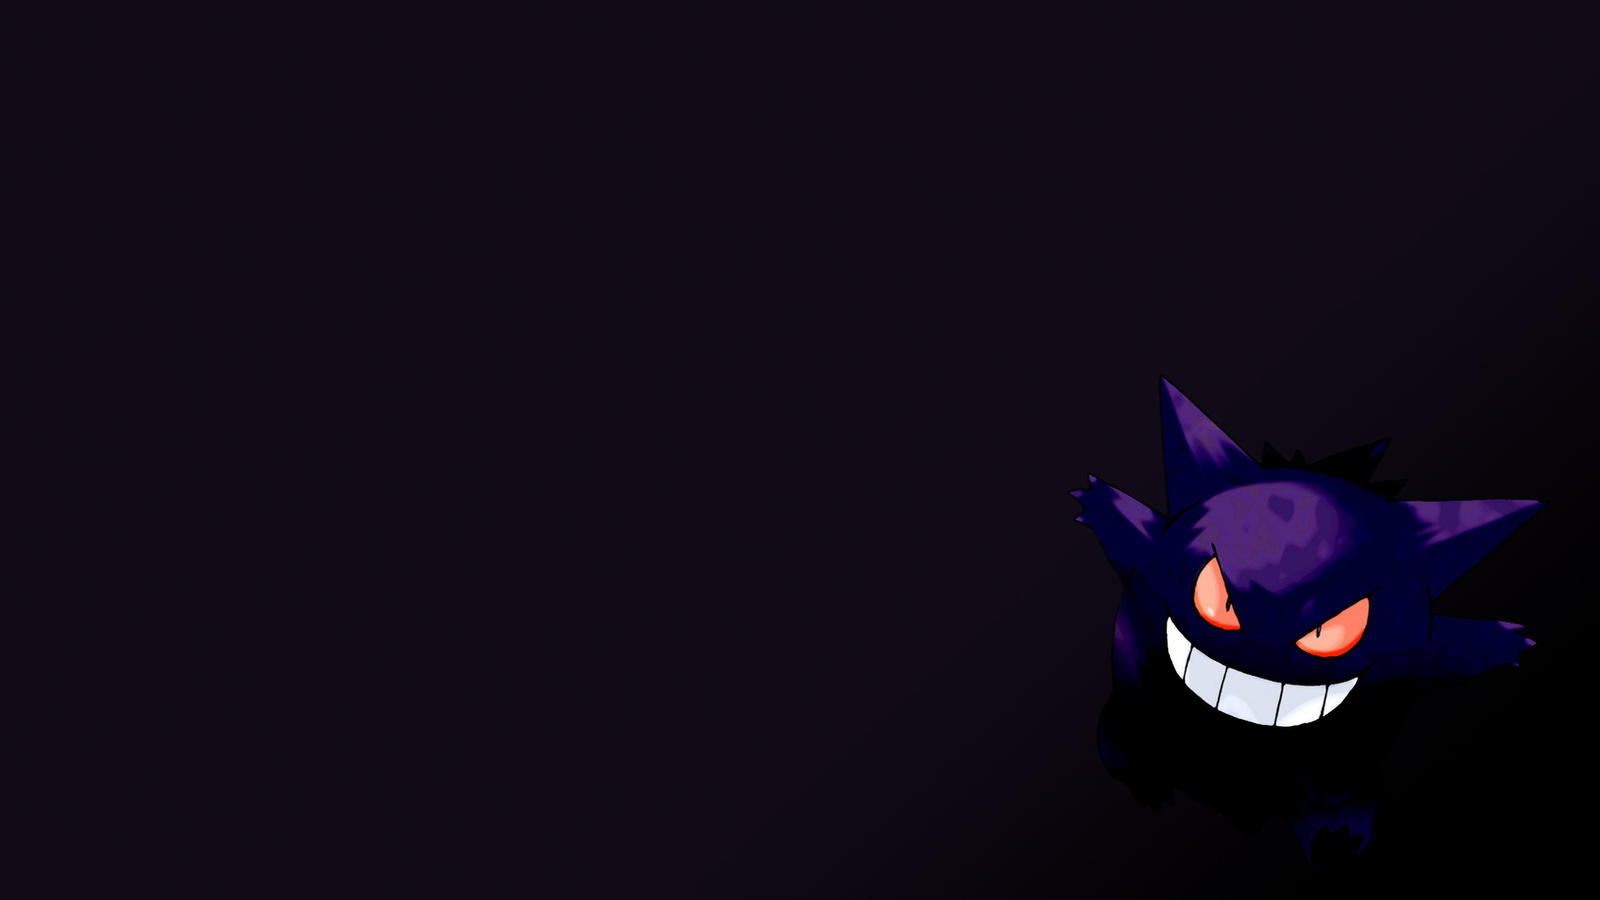 Gengar Wallpaper by Sad7Statue on DeviantArt